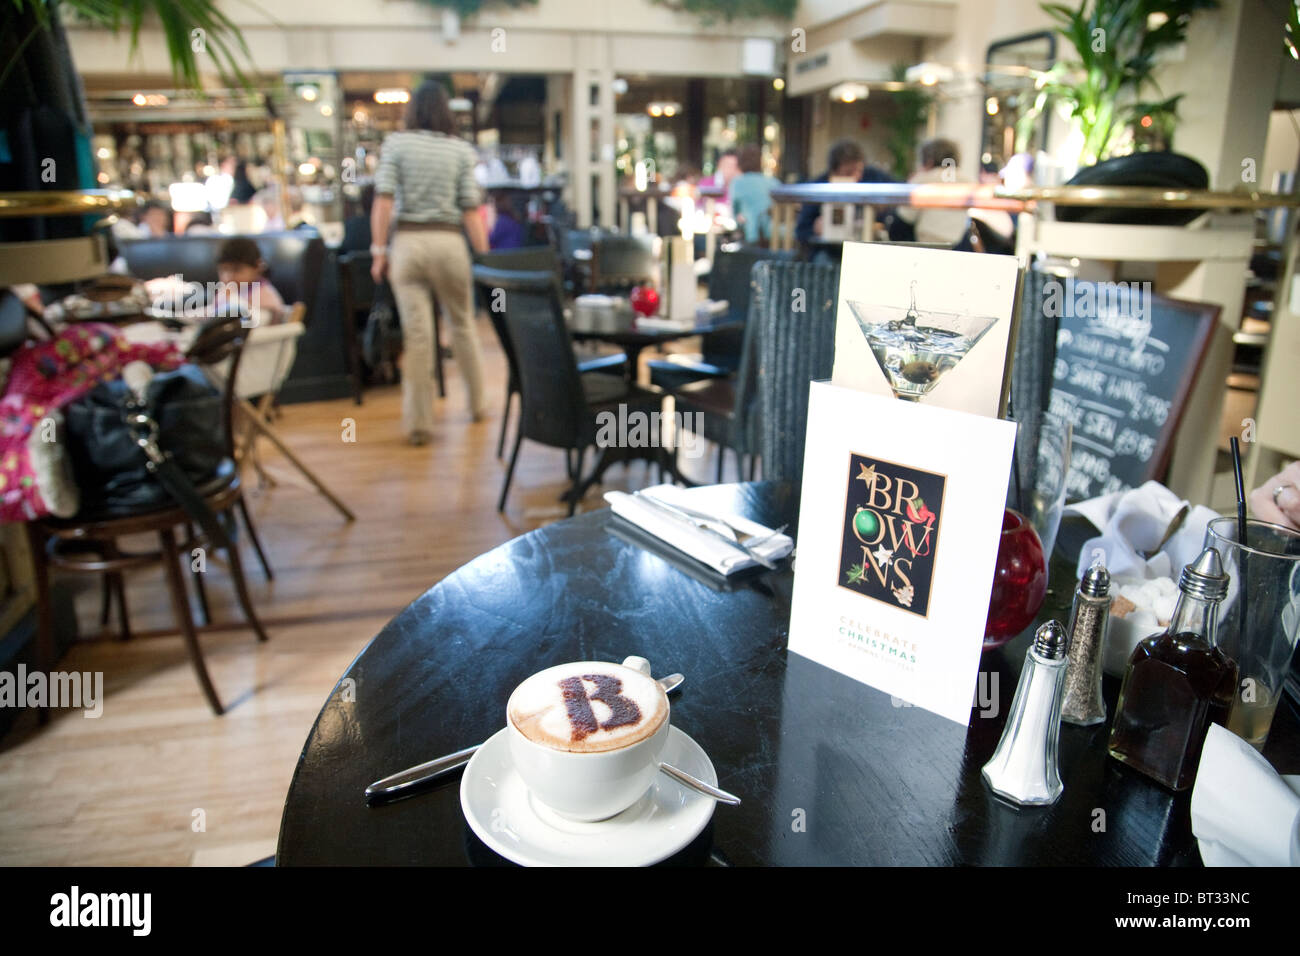 Inside Browns restaurant, bar and brasserie, Trumpington Road, Cambridge, UK - Stock Image